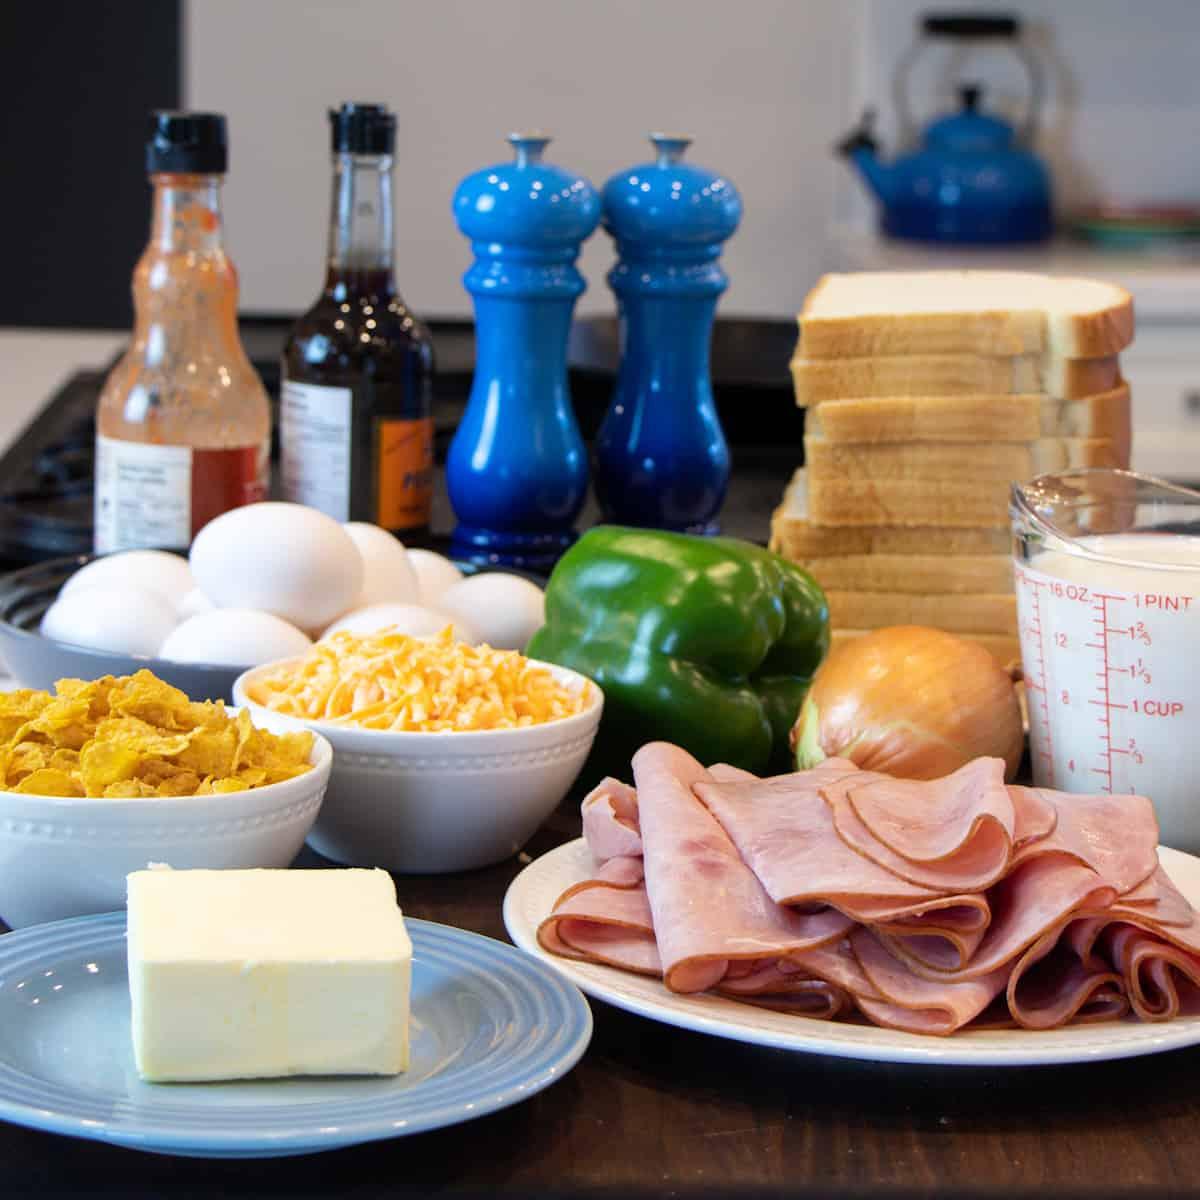 All of the ingredients on a cutting board.